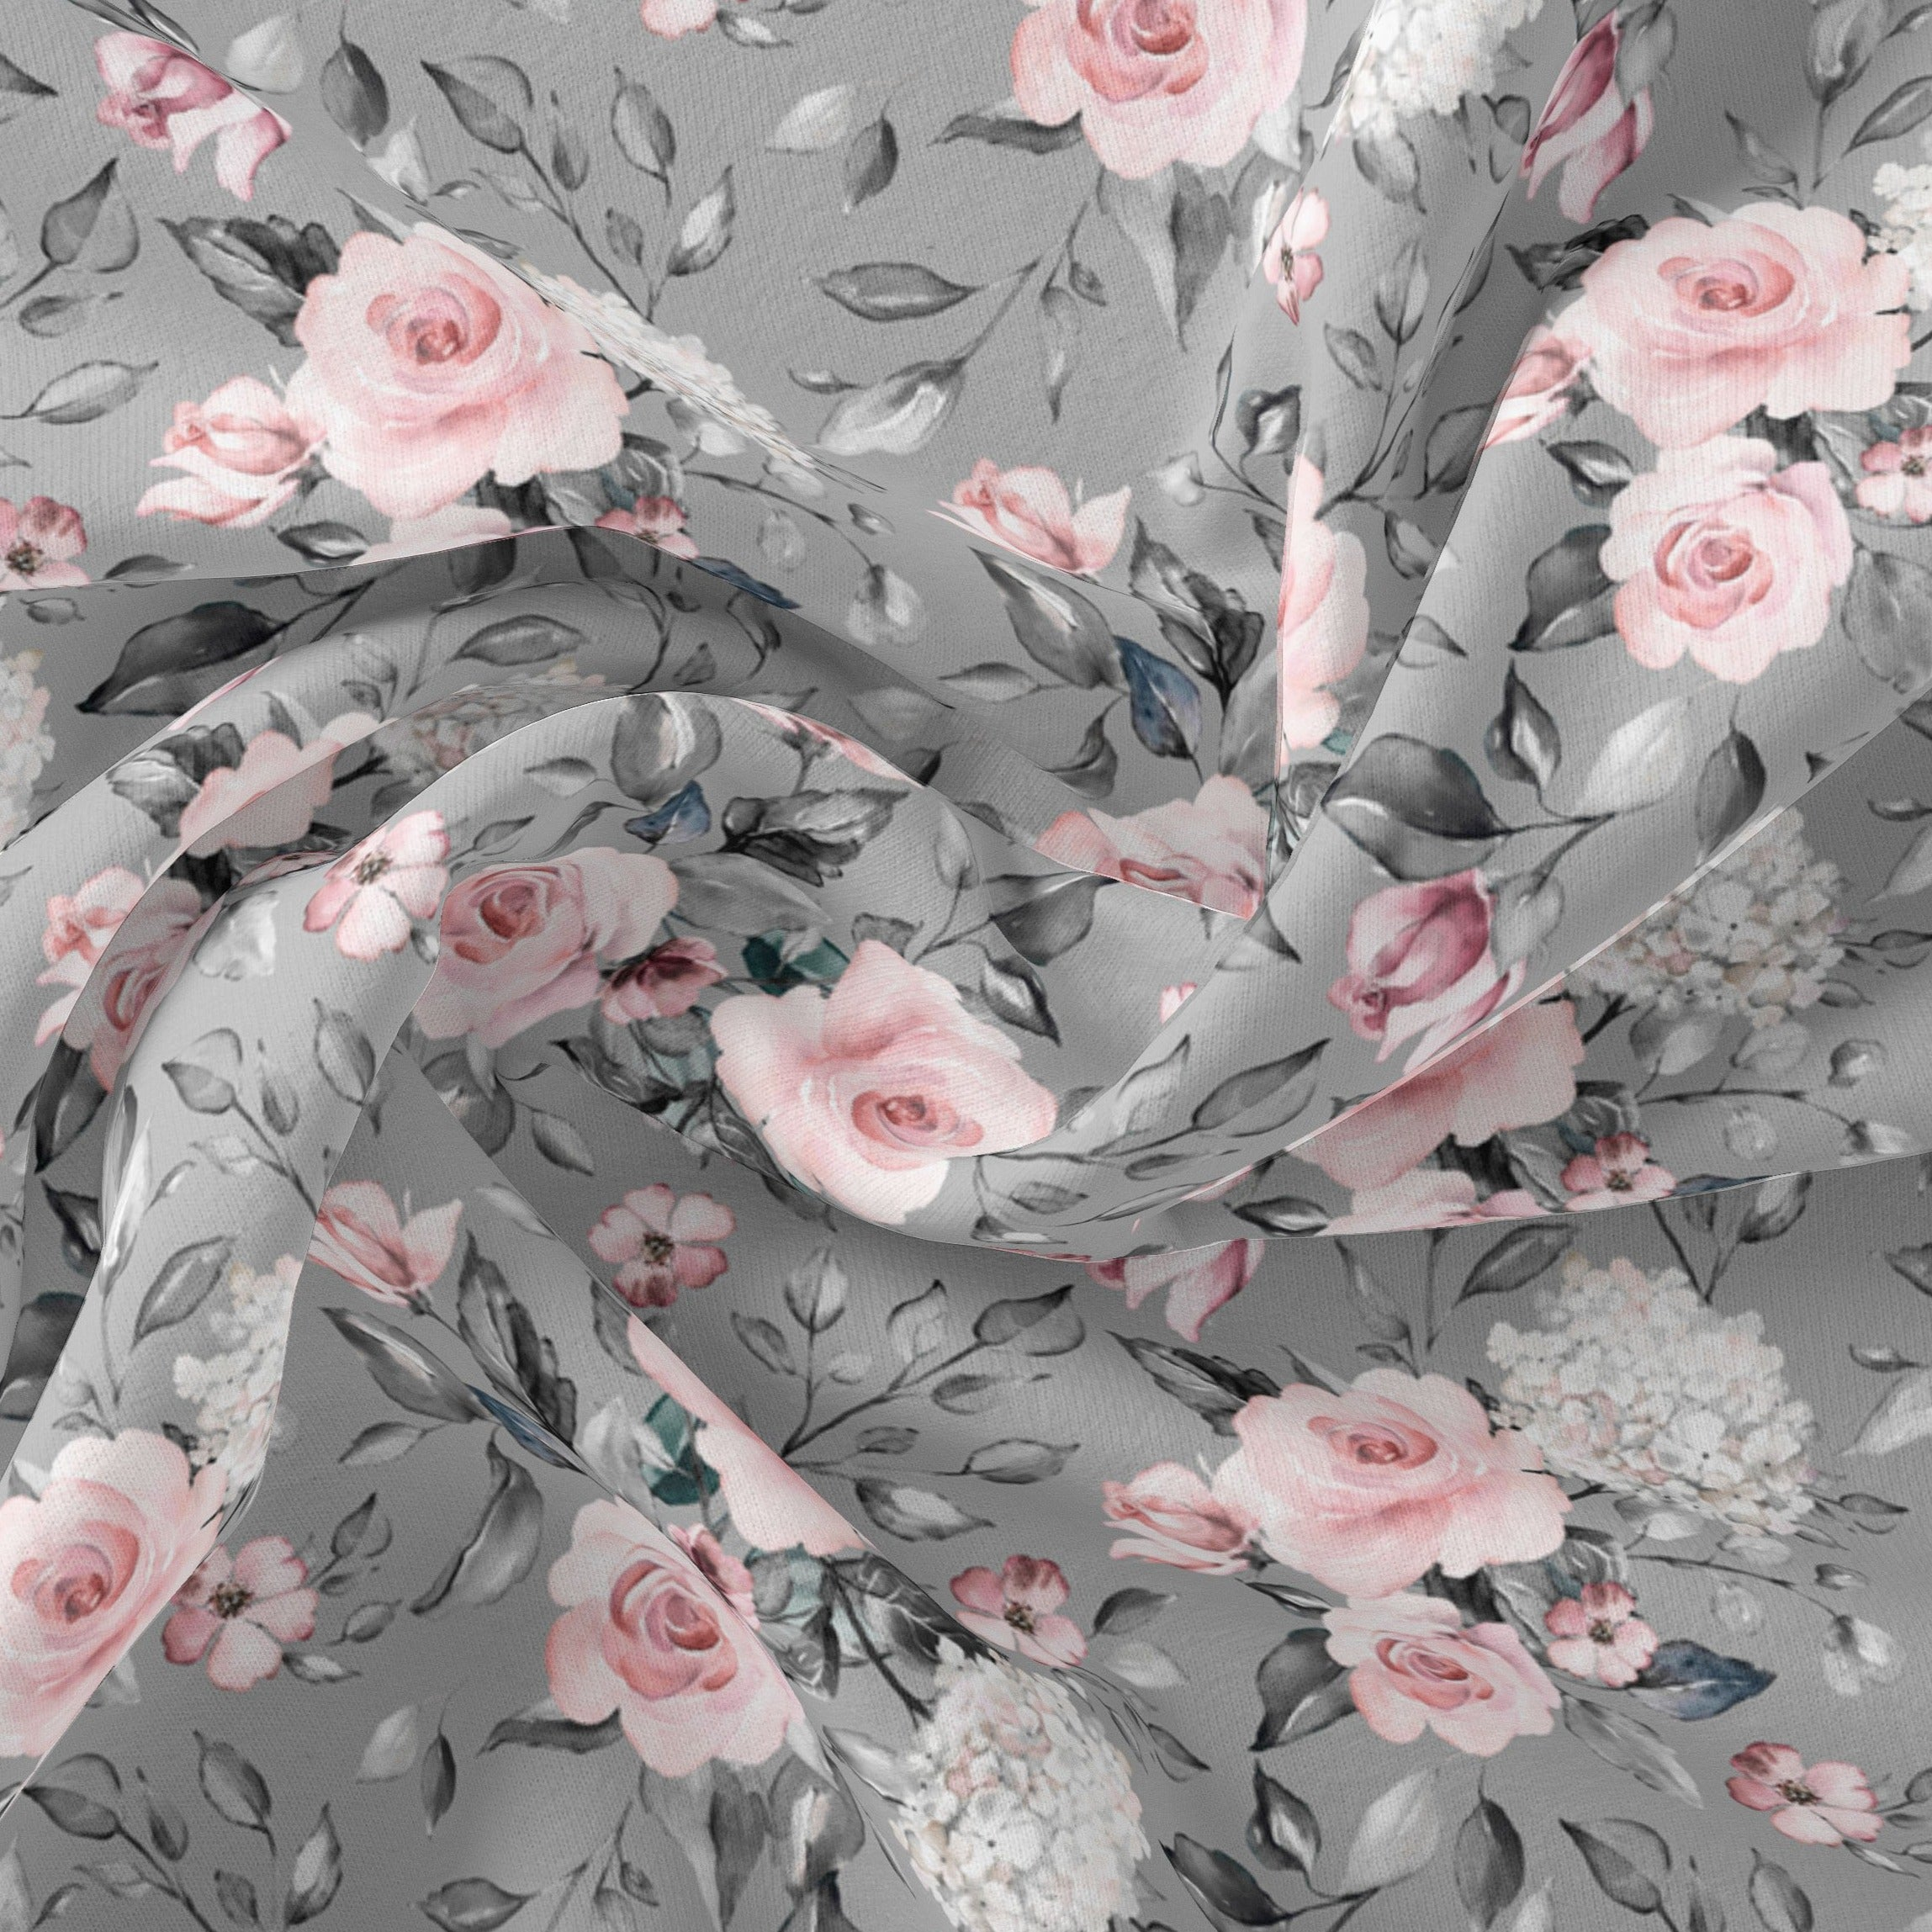 Flowers on Gray (Large Scale) - (On Demand)